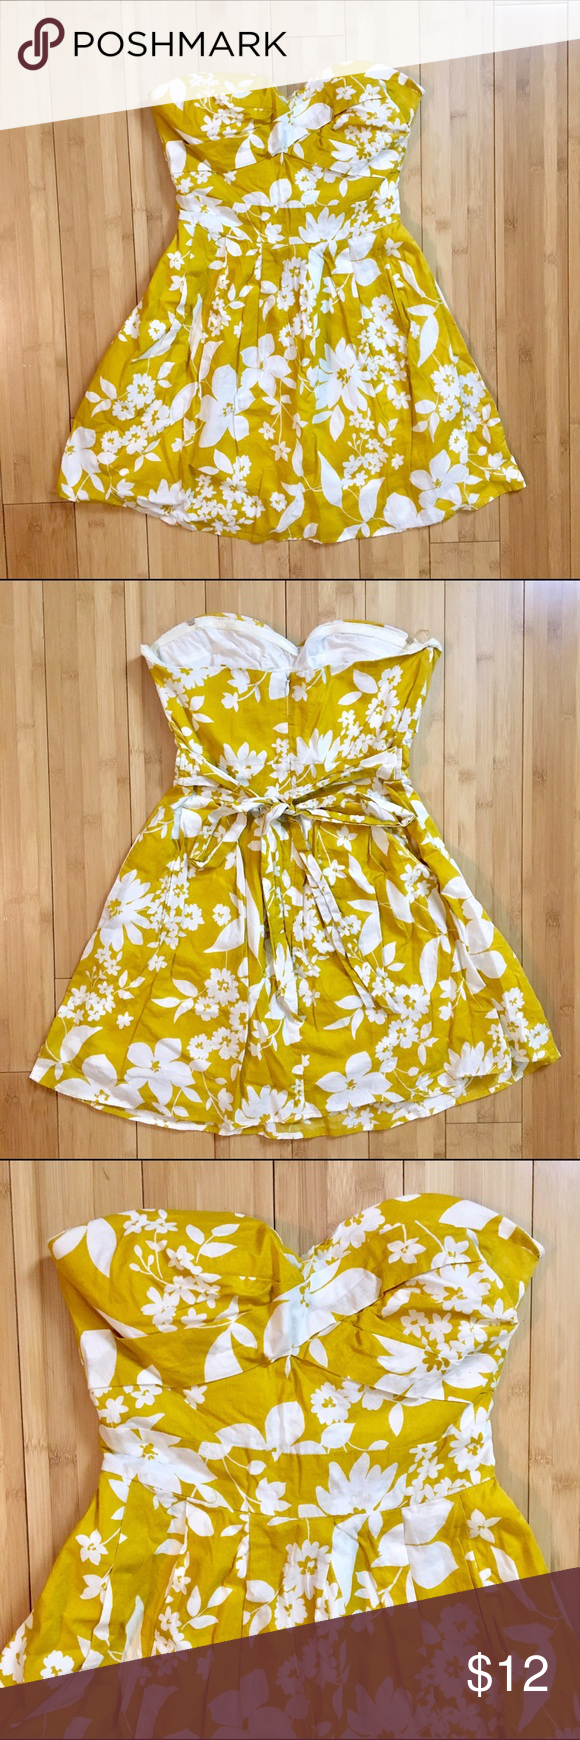 Forever 21 Mustard Yellow Floral Strapless Dress Size Small. True to size. Doesn't fit me anymore but the 4th picture is when it used to fit me. Yellow mustard color with white floral pattern. Fit and flare style with tie back. Strapless with sweetheart neckline. Boning structure on the sides. Thinly padded bust. Pads are not removable. Worn plenty of times but still in good condition. Straps are missing. The boning helps it stay up just fine though. I'm 5'2 and it comes above my knees…